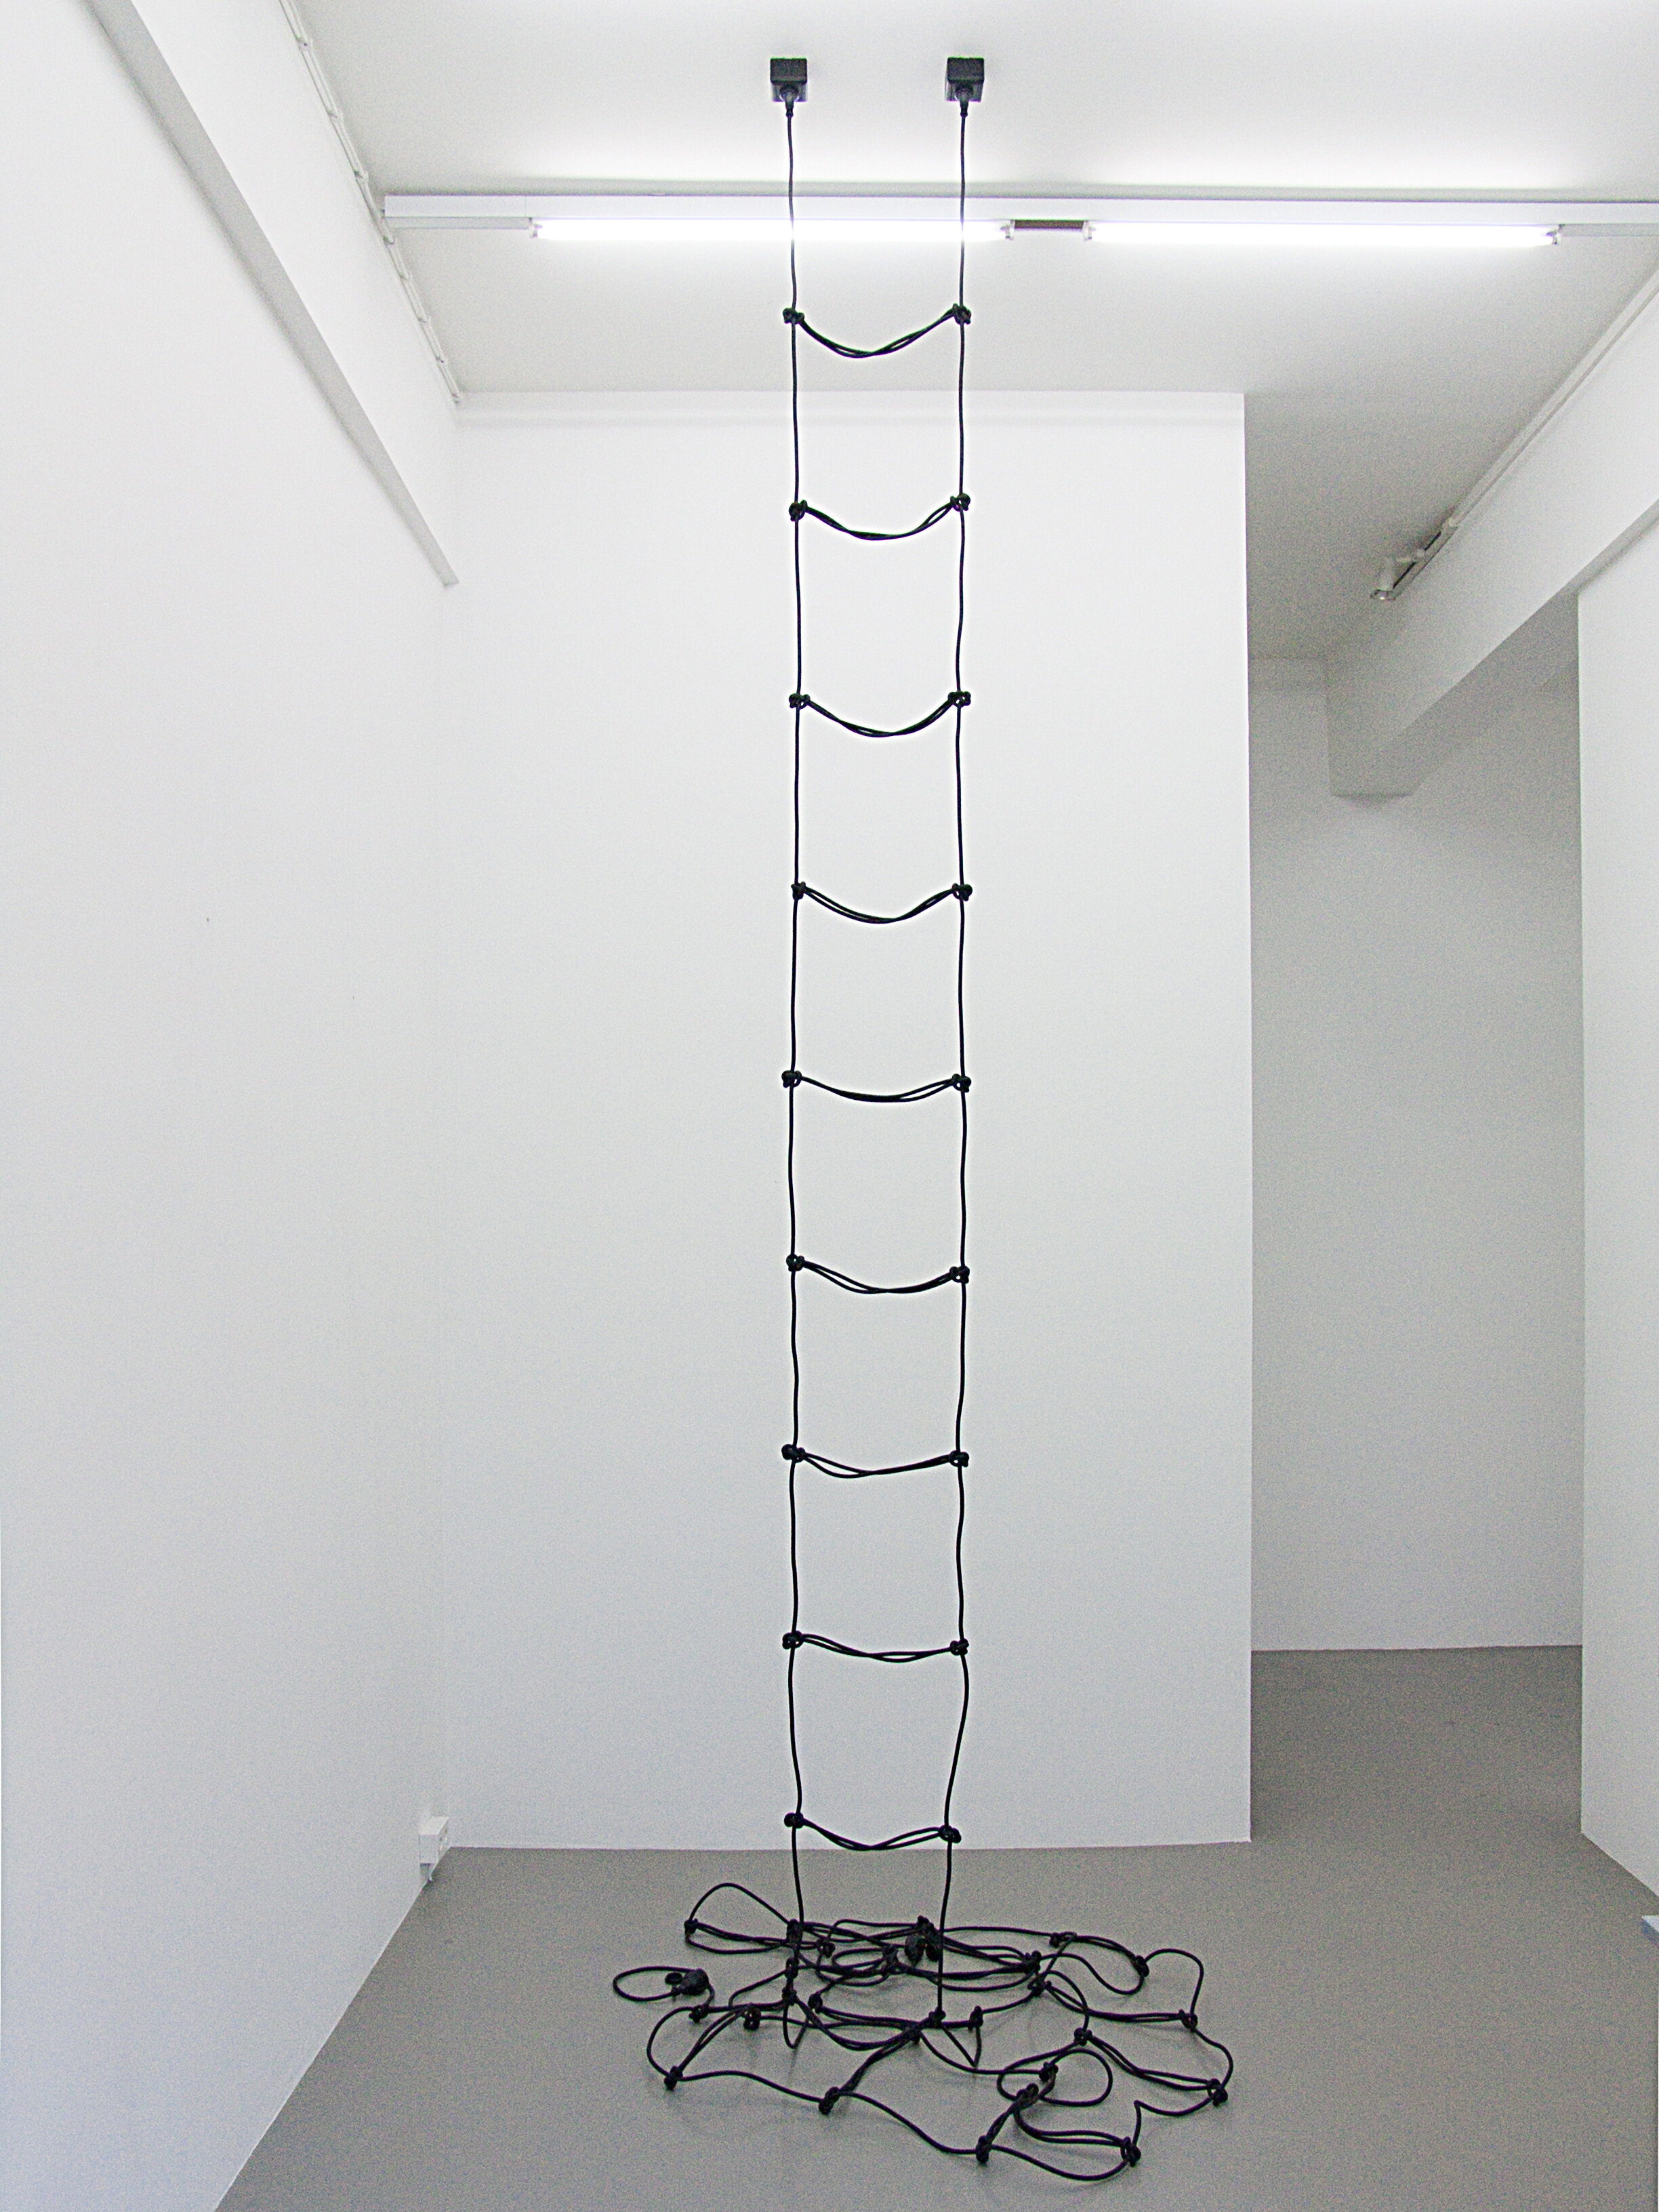 Leiter , installation view, two 82-foot cables + 2 Plugs, Charim Ungar Contemporary Gallery, Berlin 2010